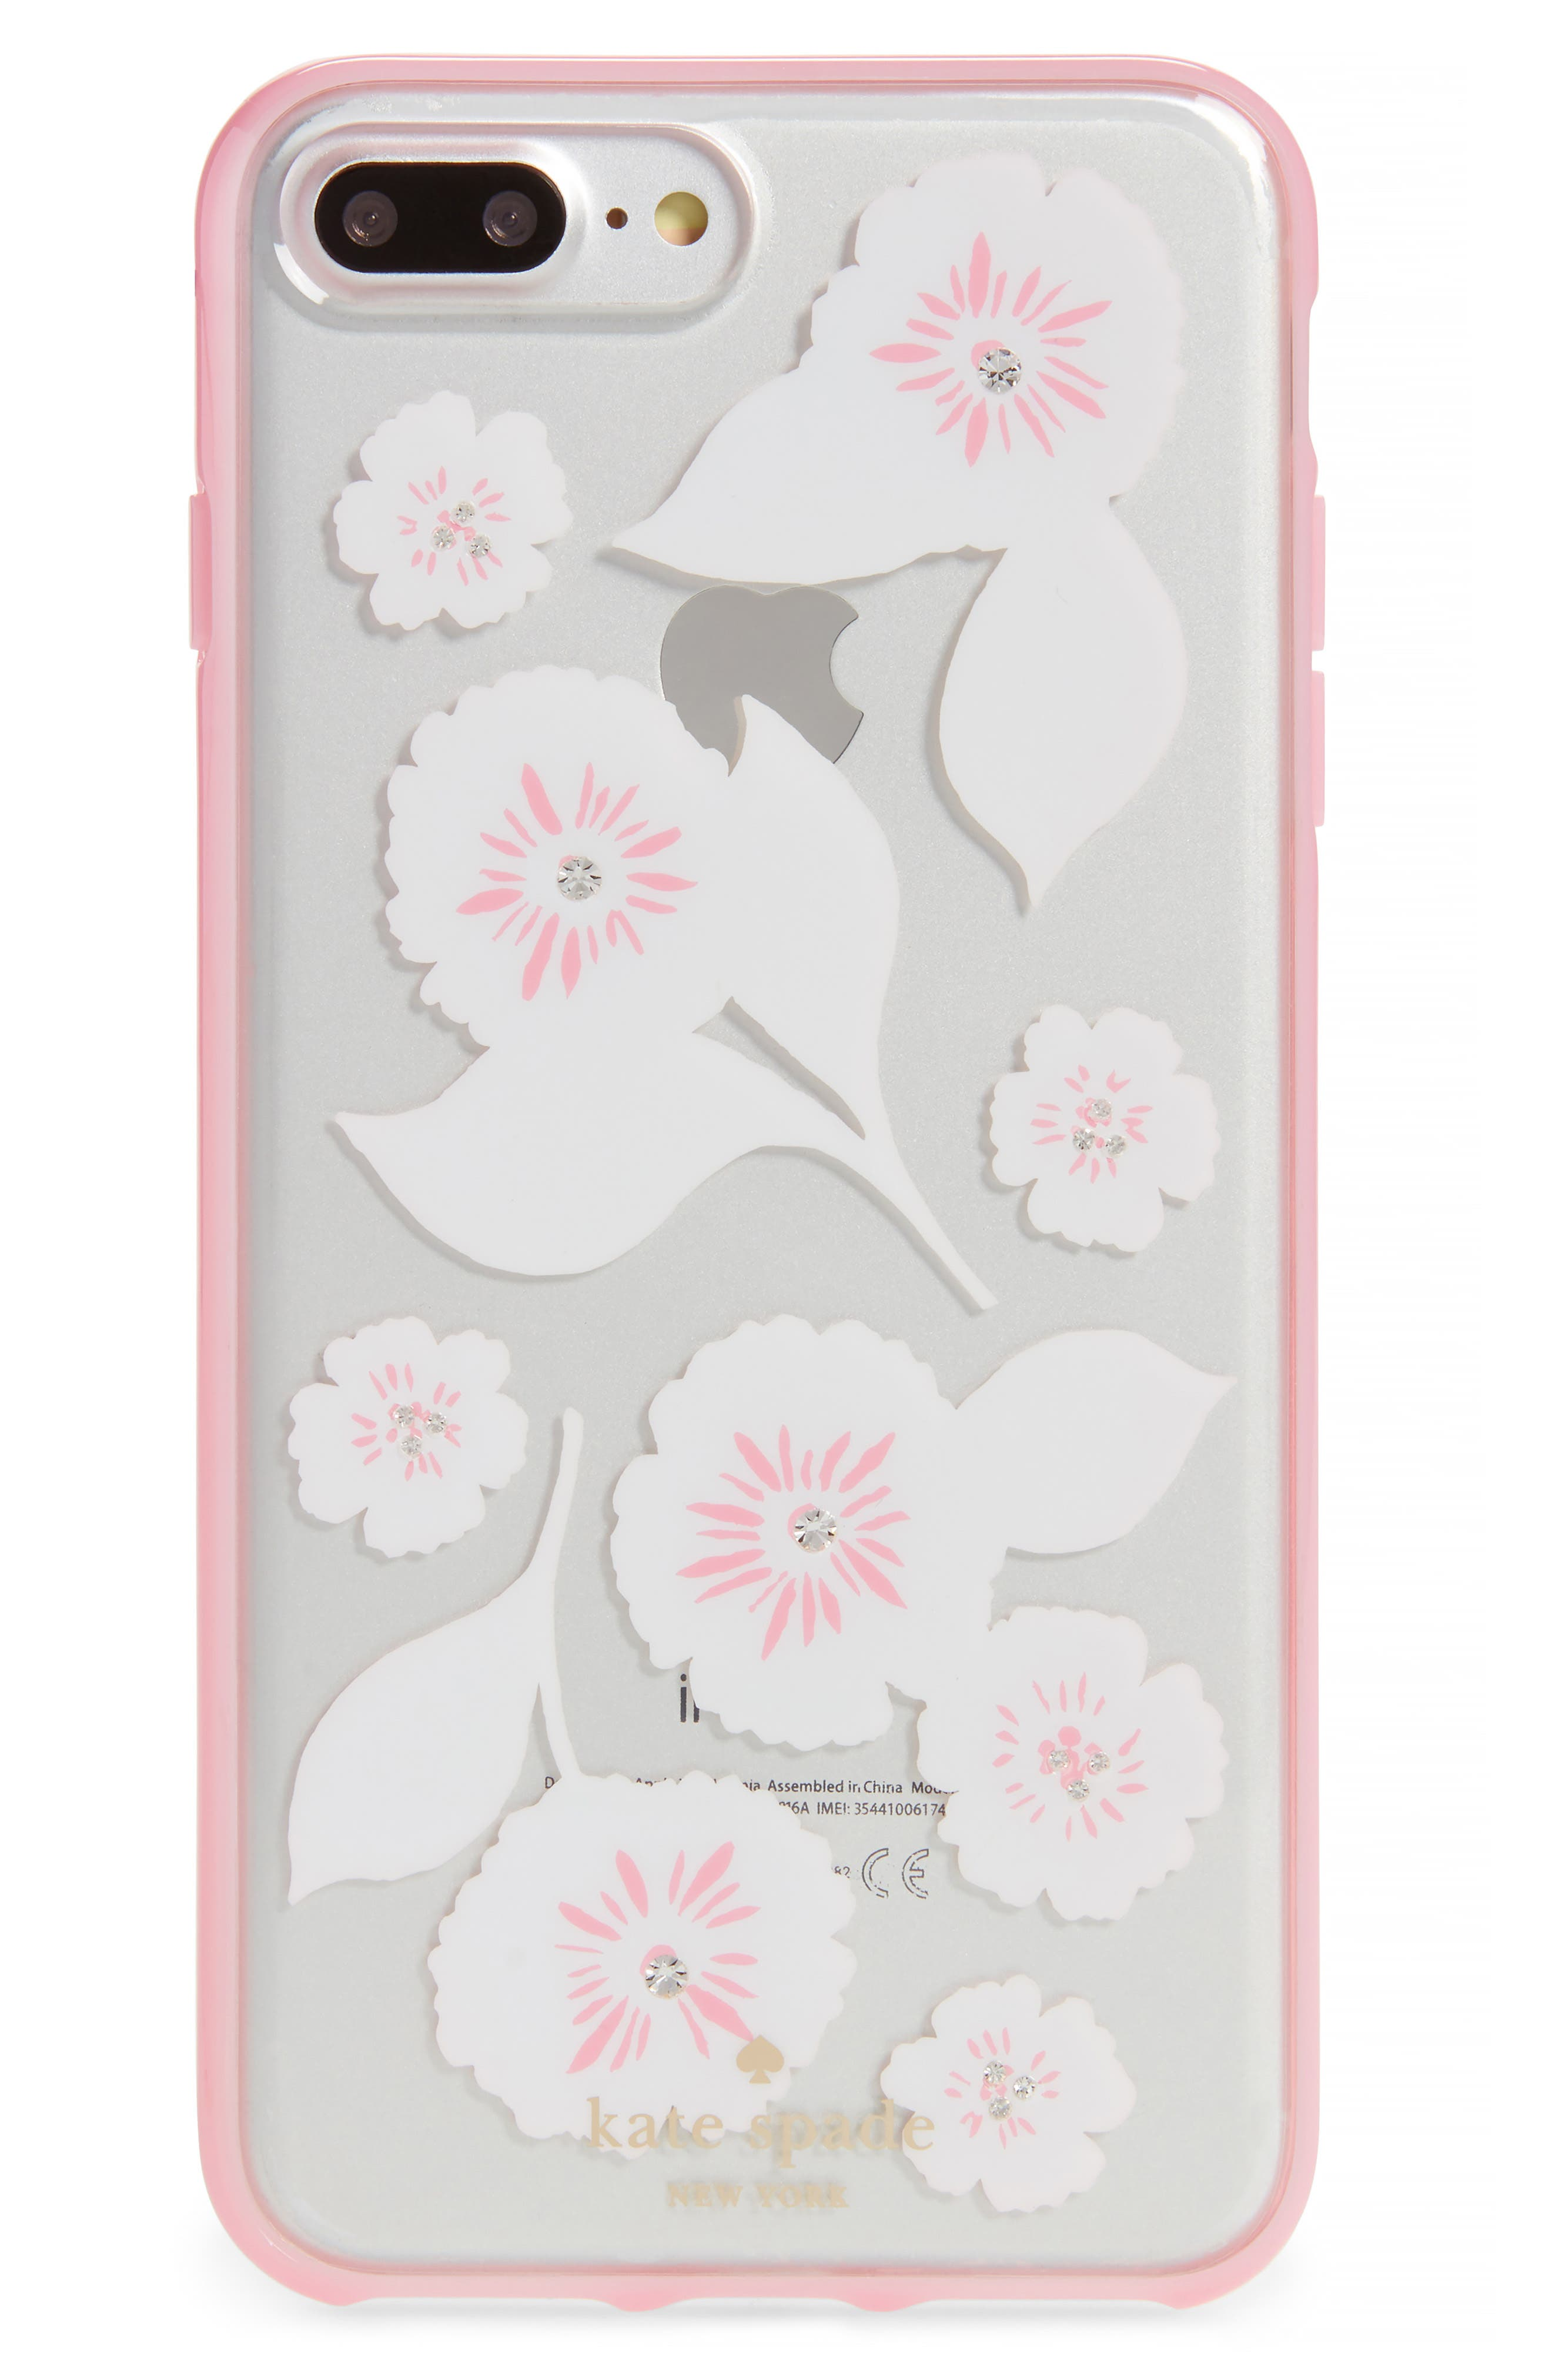 Main Image - kate spade new york crystal embellished iPhone 6/6s/7/8 & 6/6s/7/8 Plus case